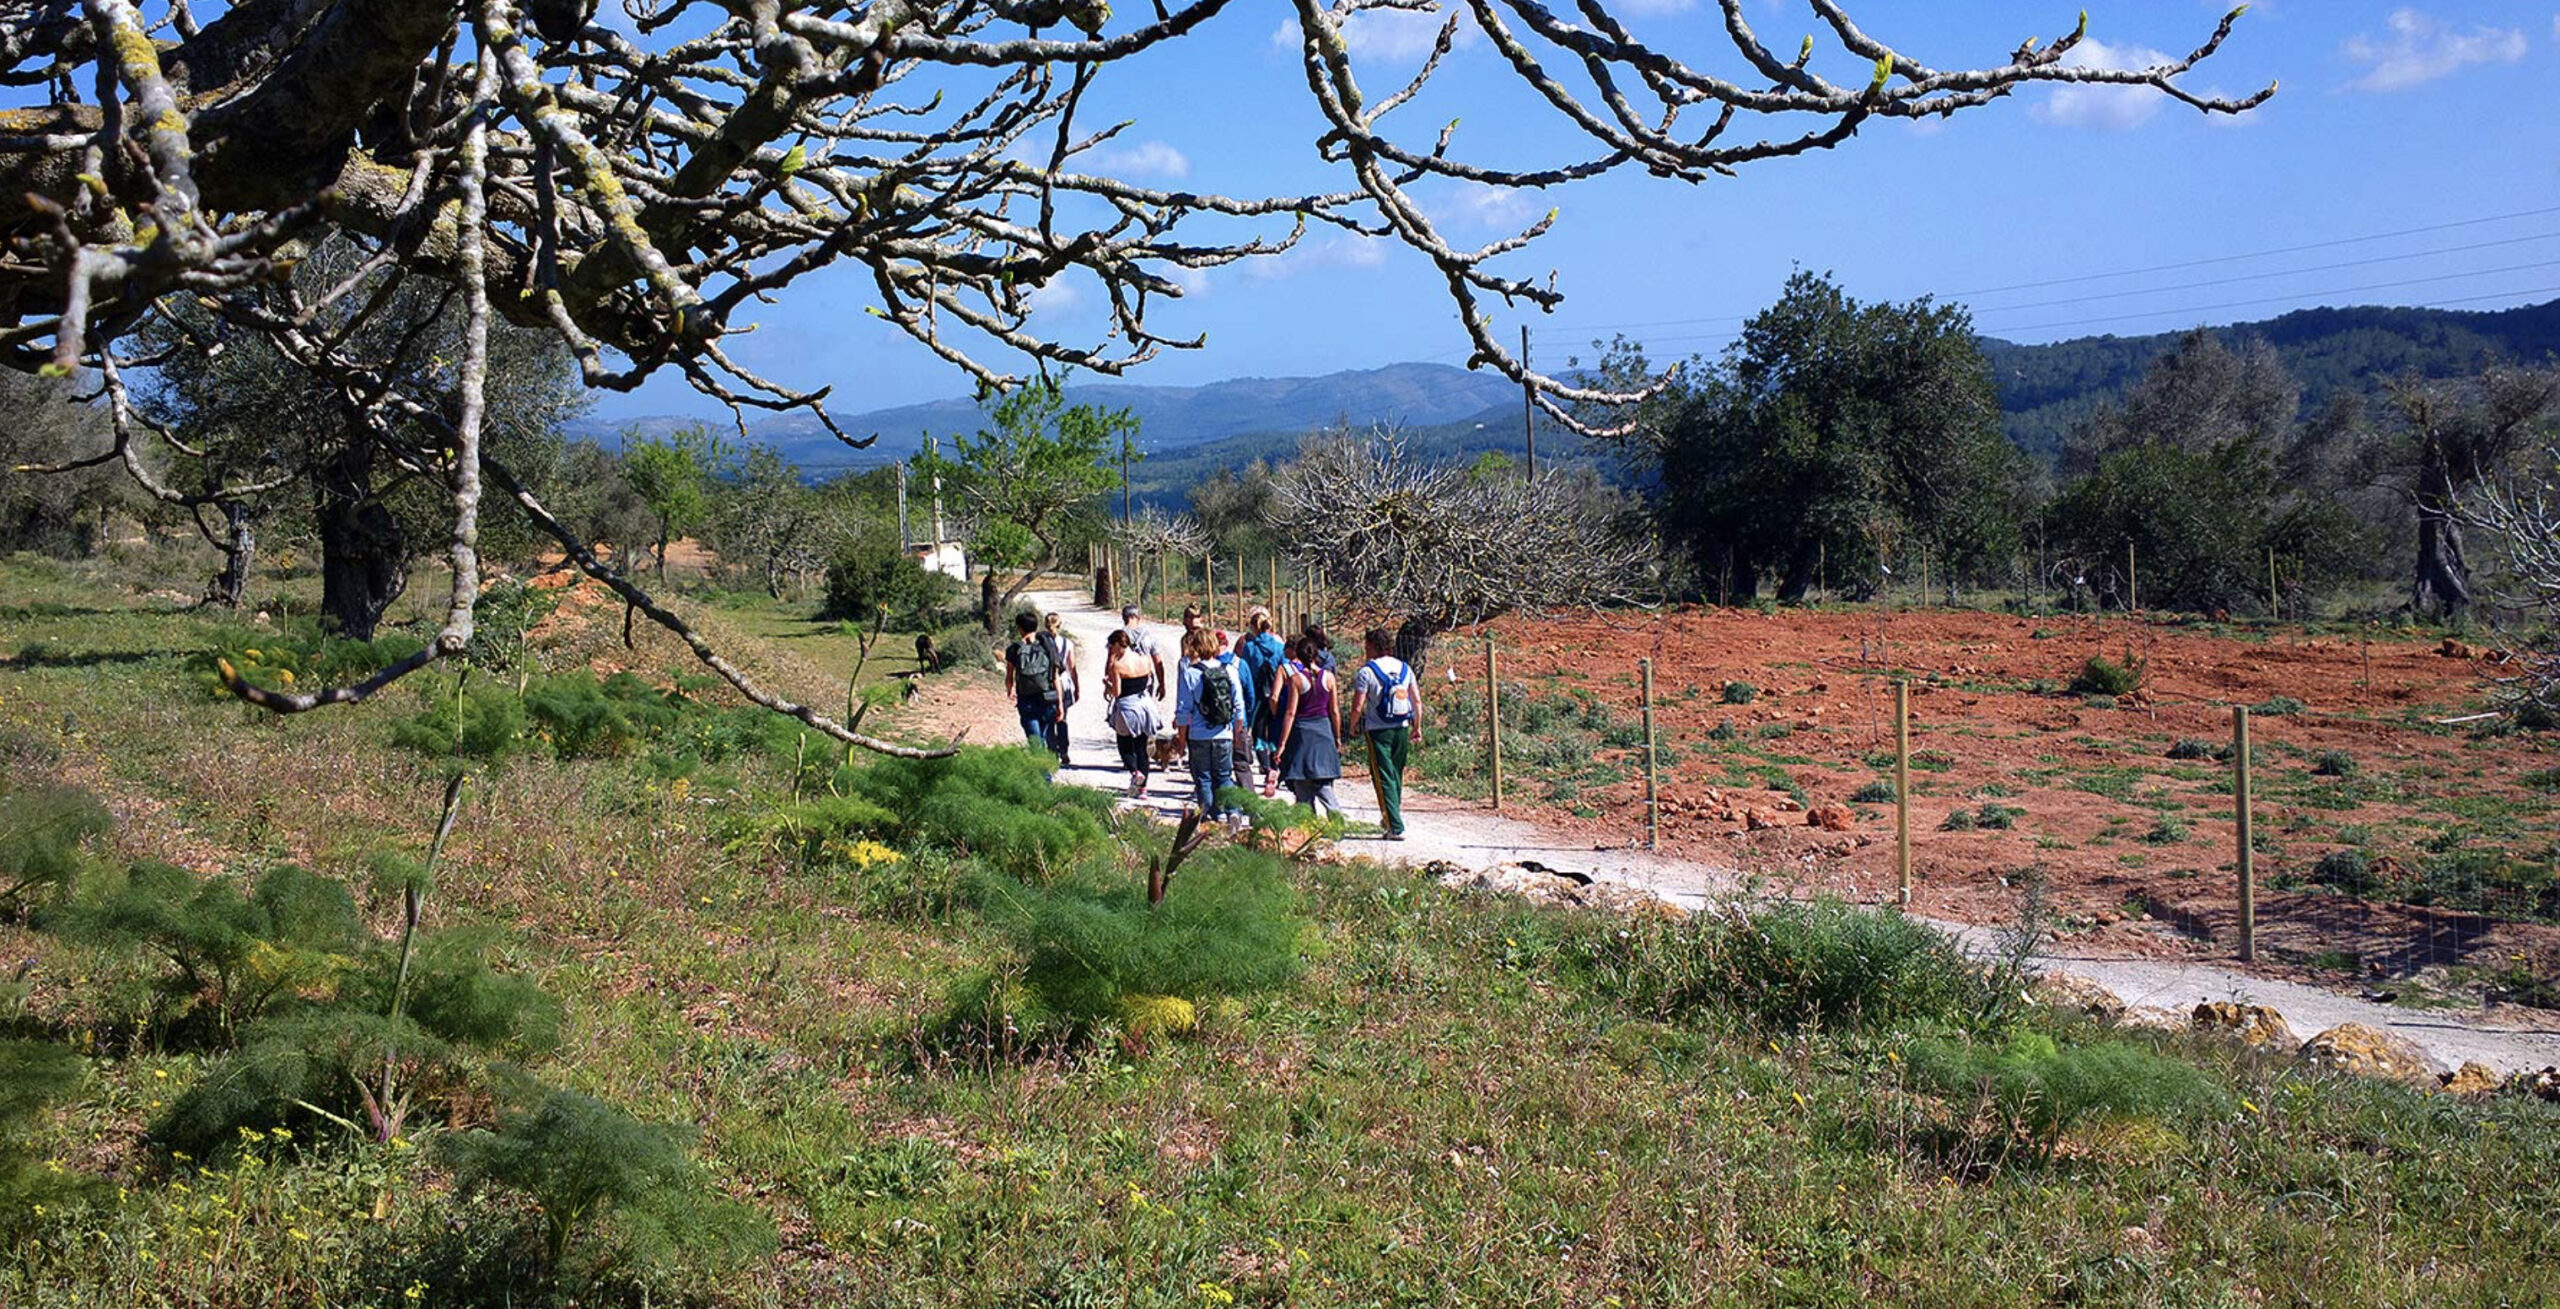 Ibiza walks by hikingibiza.nl, walking group, blue sky, summer field